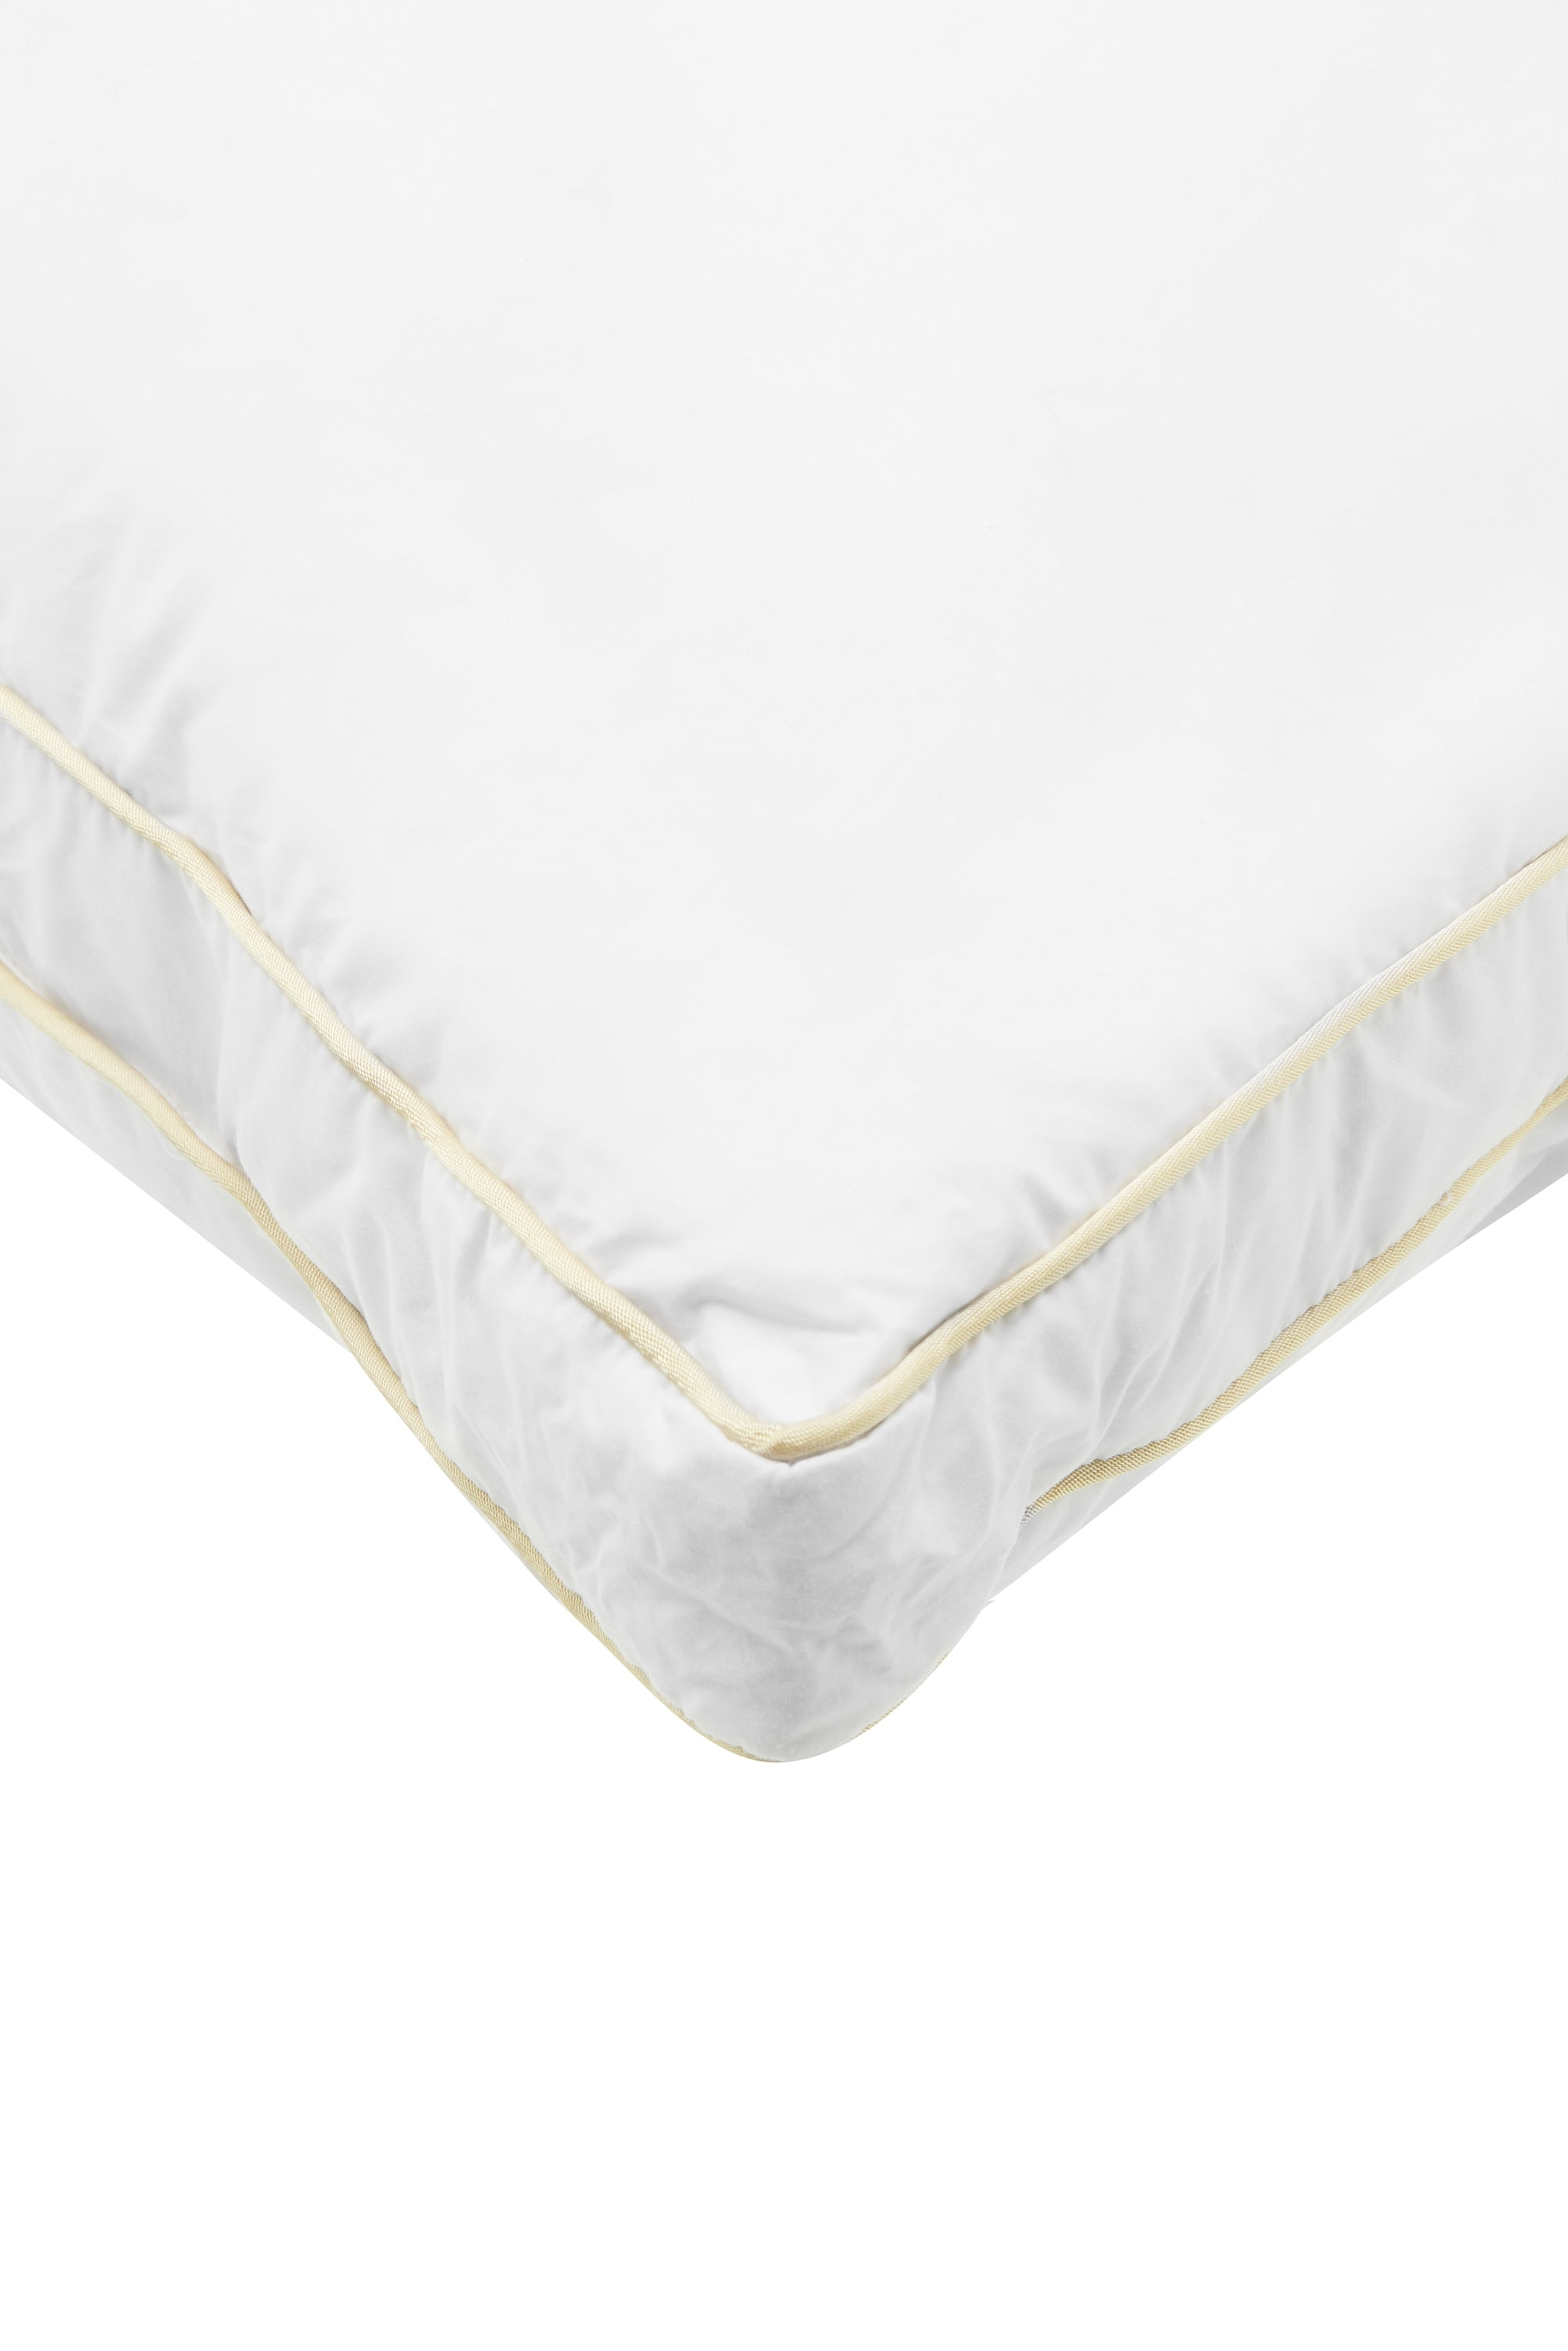 The Downia Gold Collection Surround Pillow